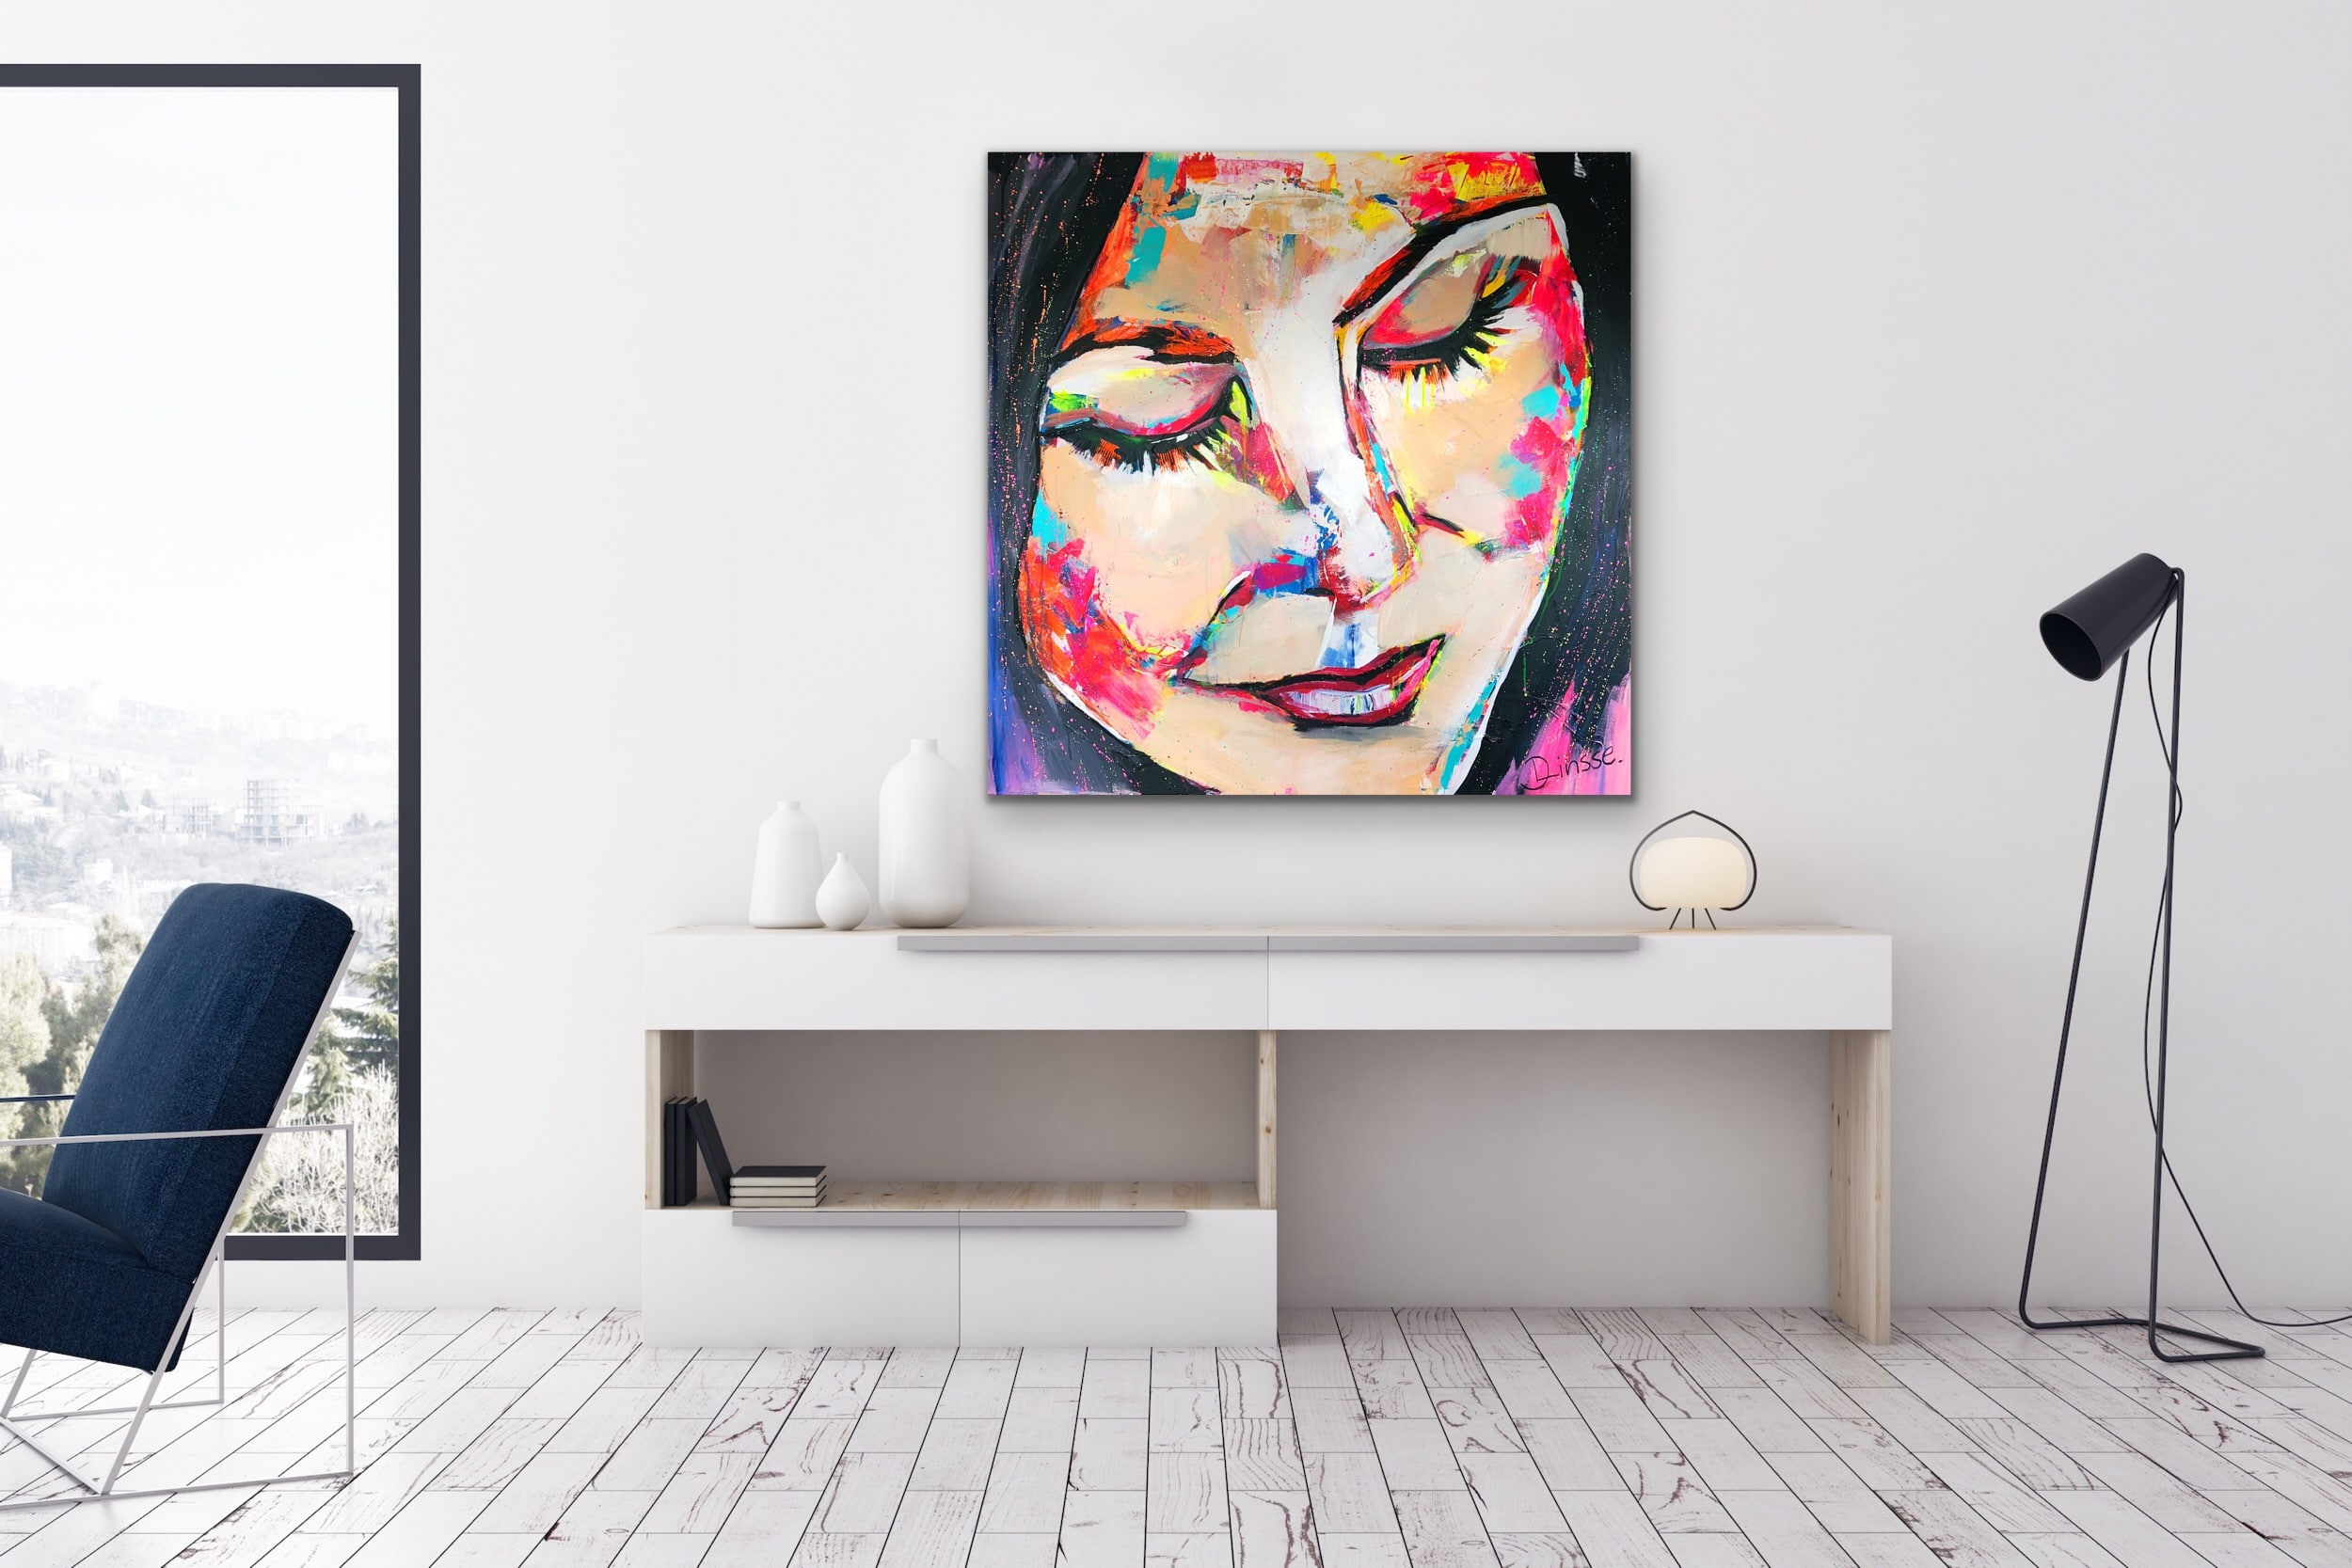 Mirror - Mixed Media Painting by Fine Artist Diana Linsse